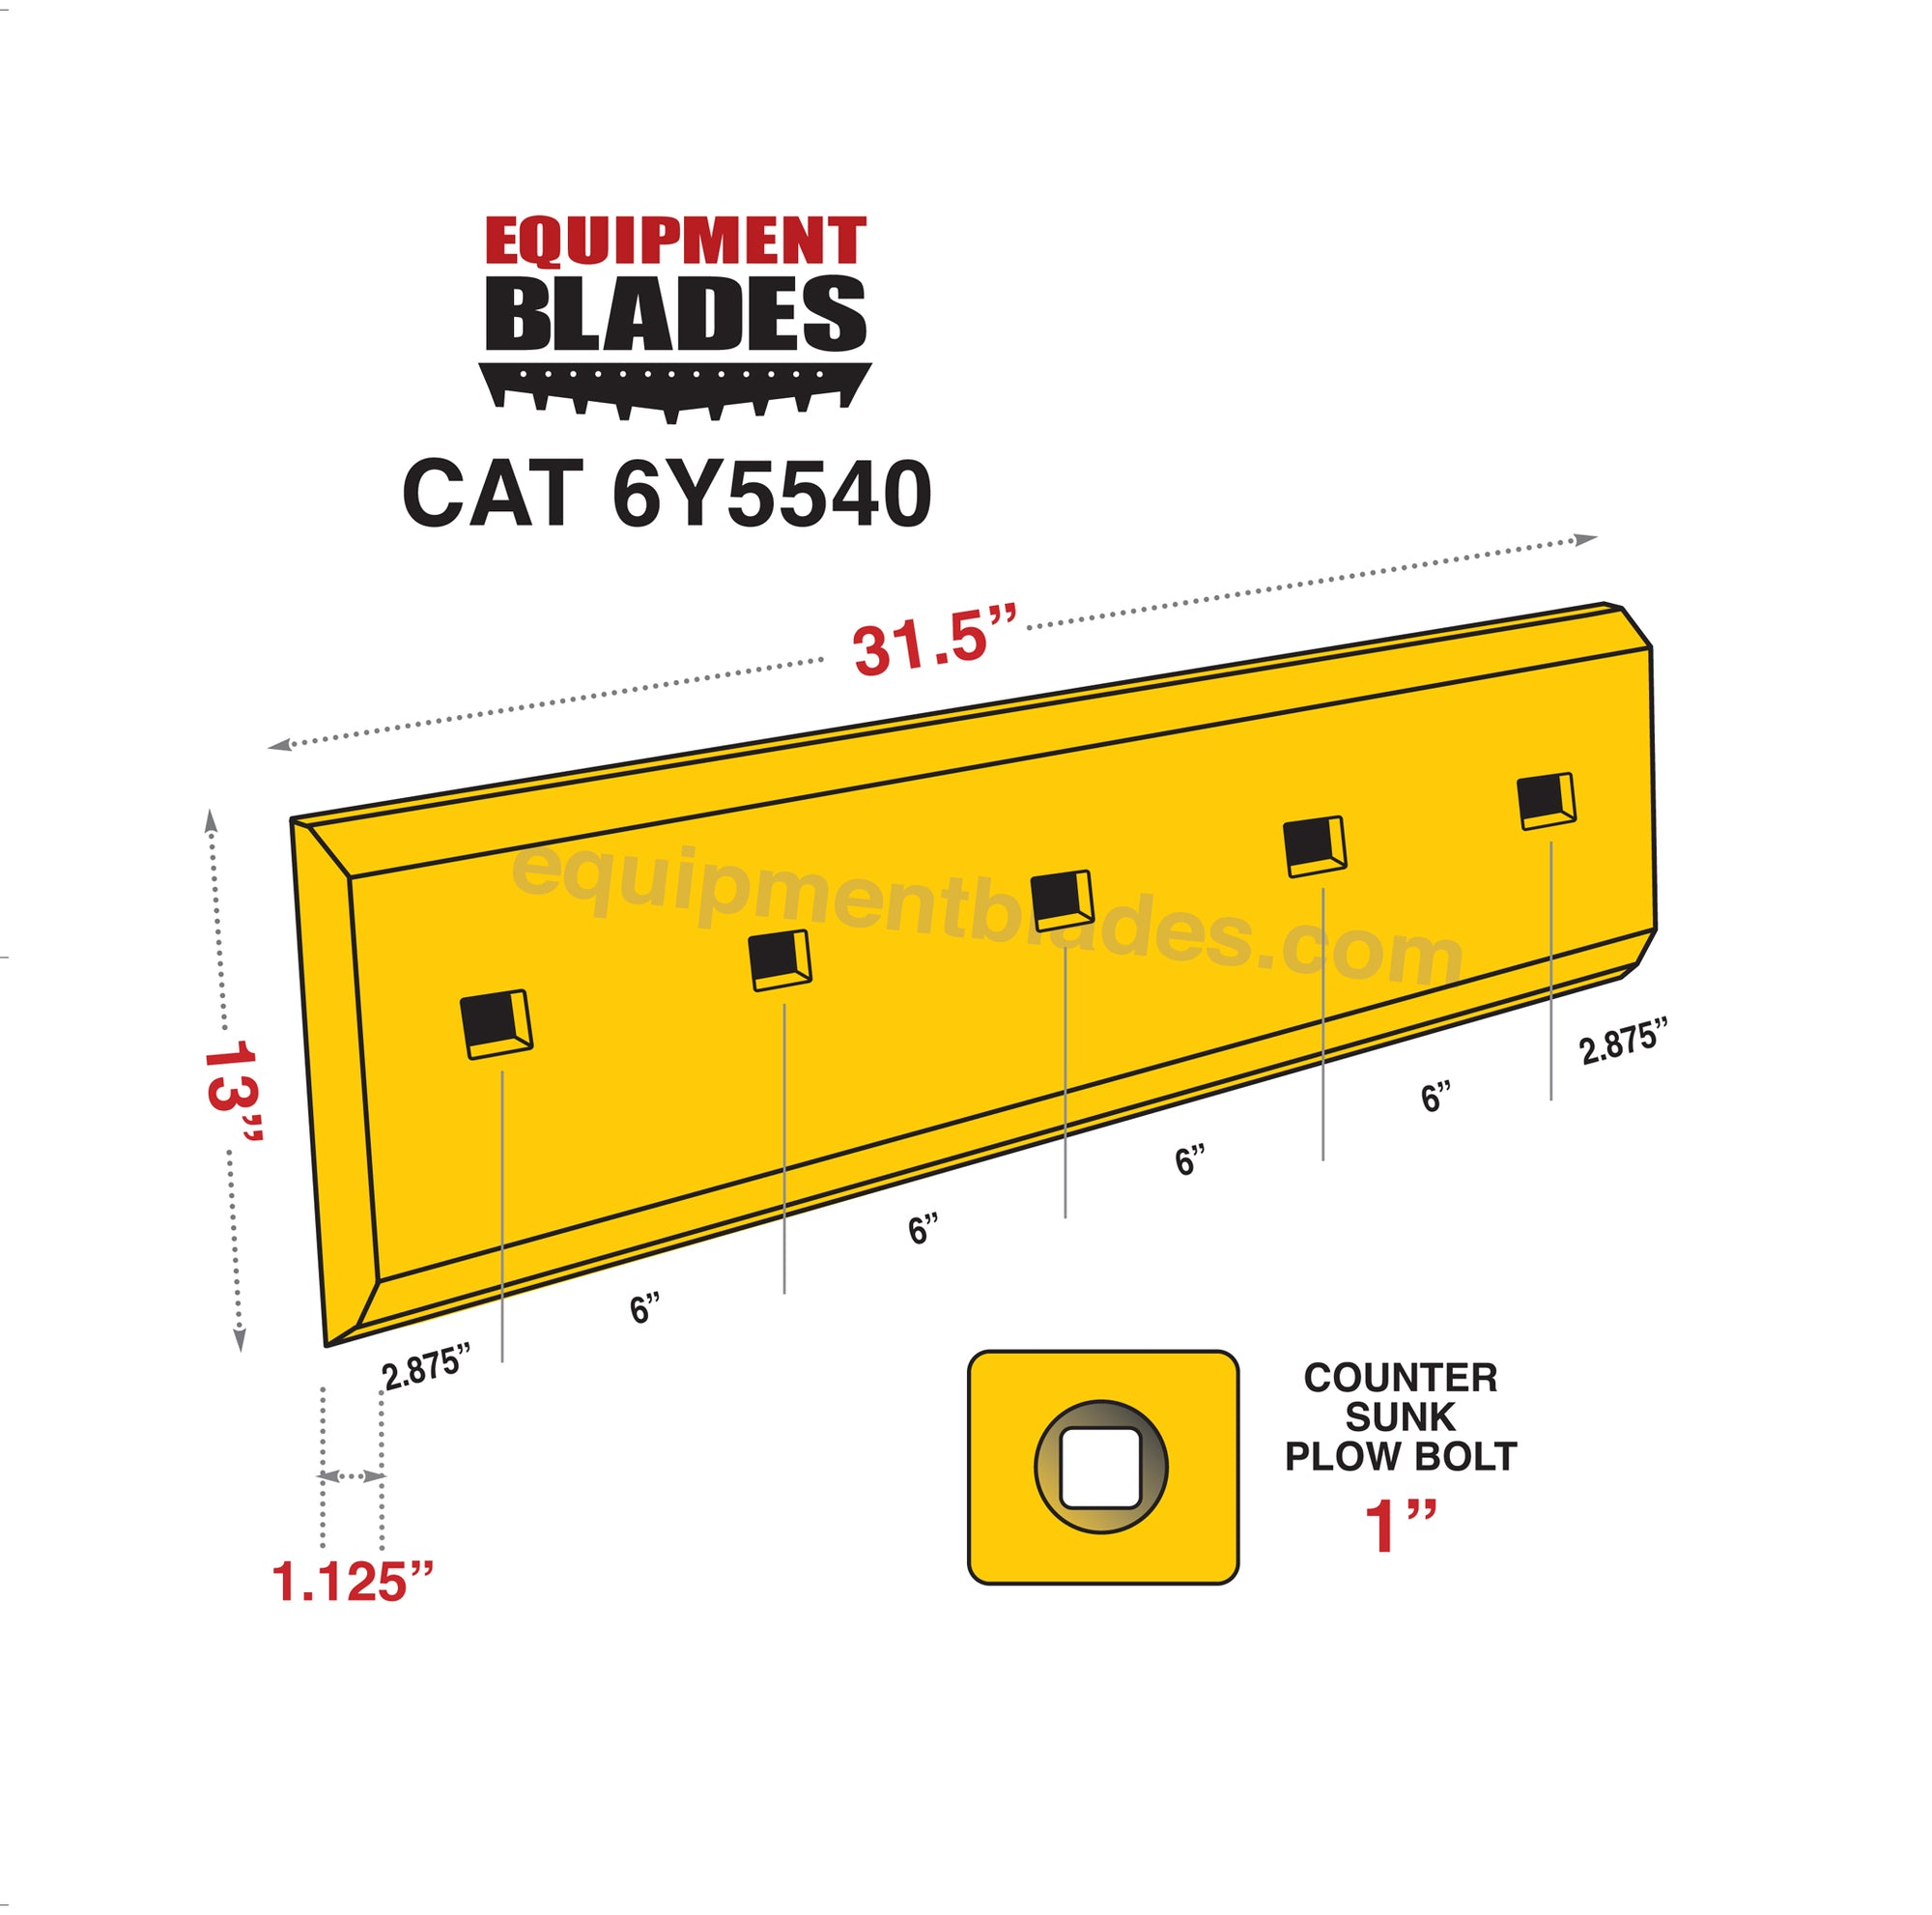 CAT 6Y5540-Bull Dozer blades-Equipment Blades Inc-Equipment Blades Inc